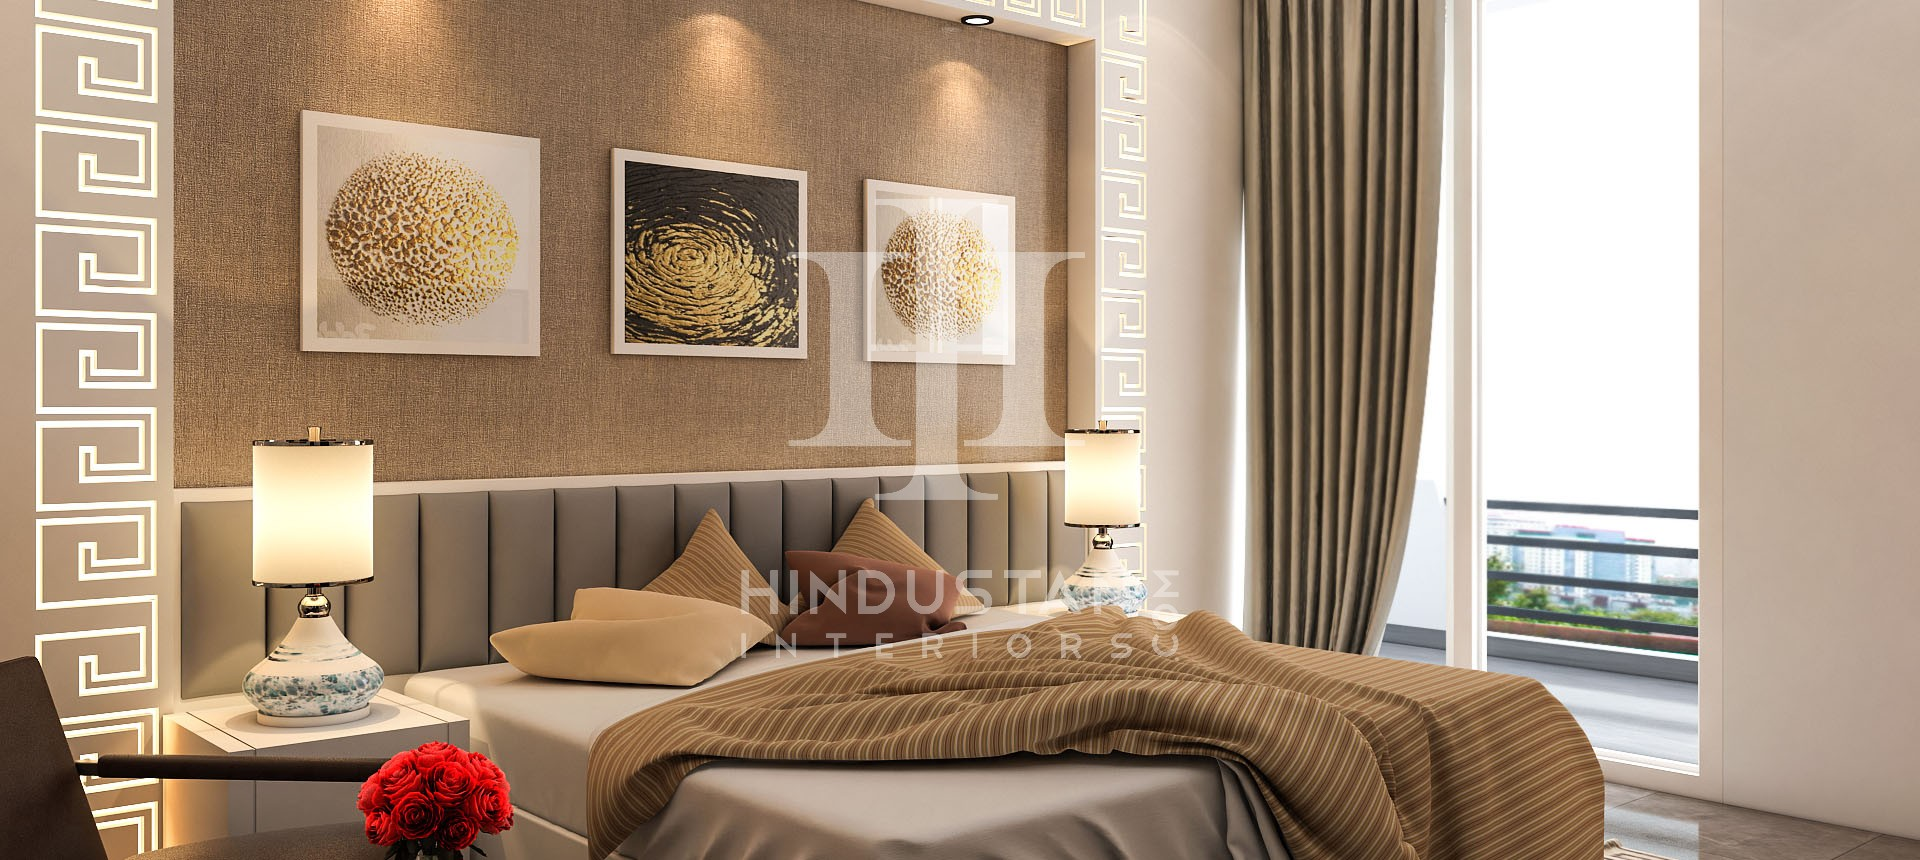 Our Services Home Interiors Home Decorators Delhi Gurgaon Noida Faridabad And Ghaziabad